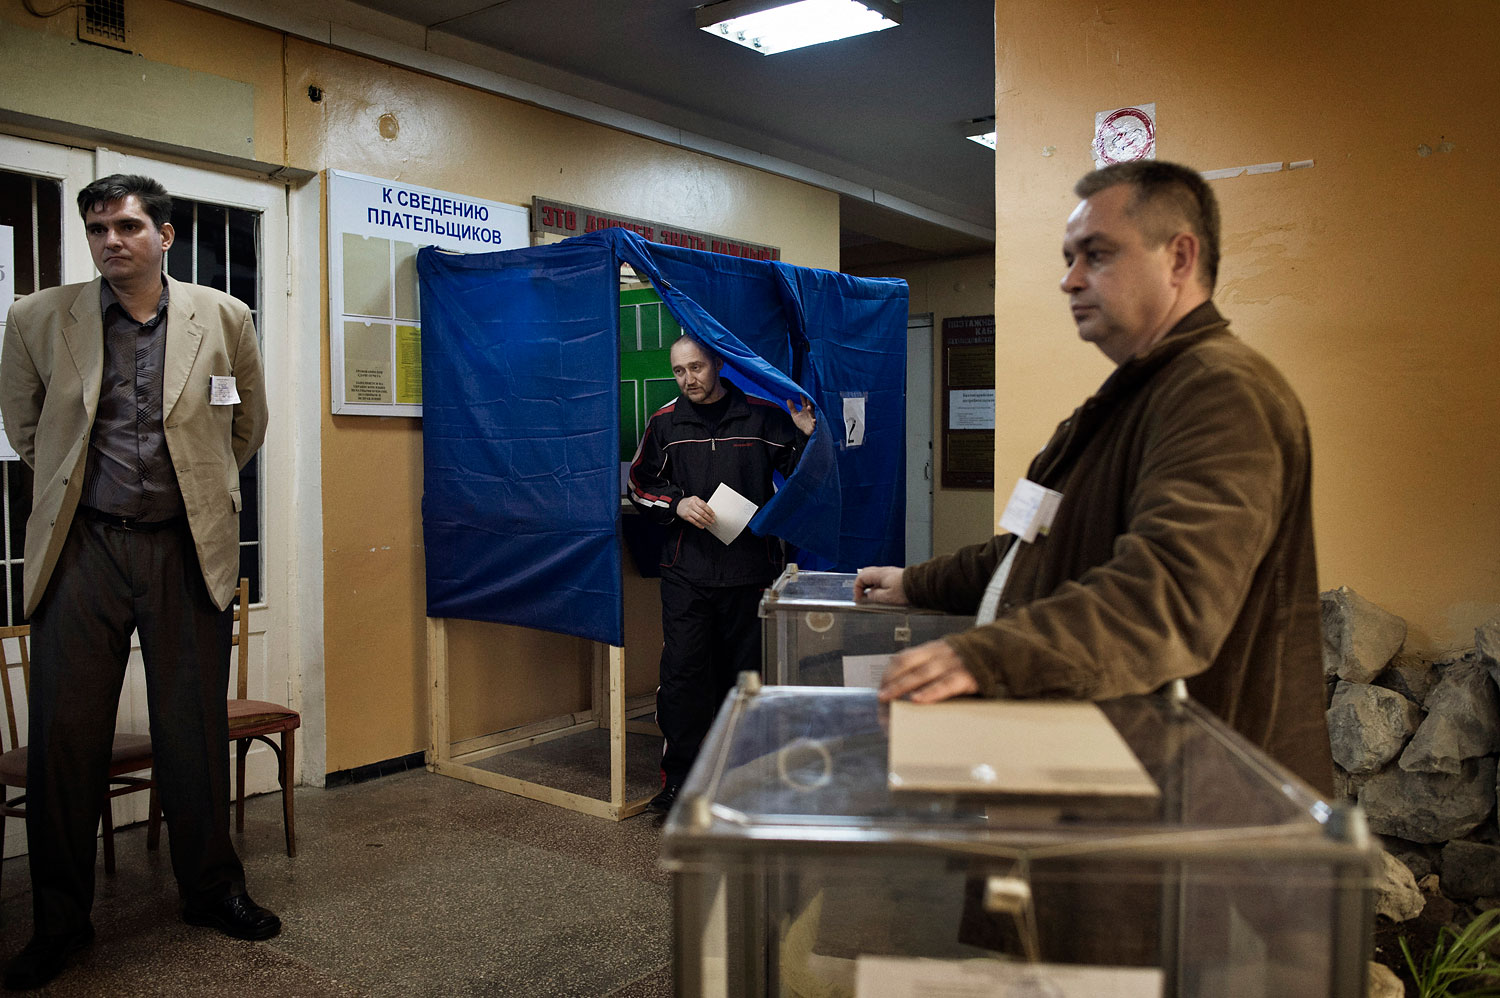 Sergei Yurchenko, the leader of a pro-Russian paramilitary force in Crimea, votes in his hometown Bakhchysarai on March 16, 2014